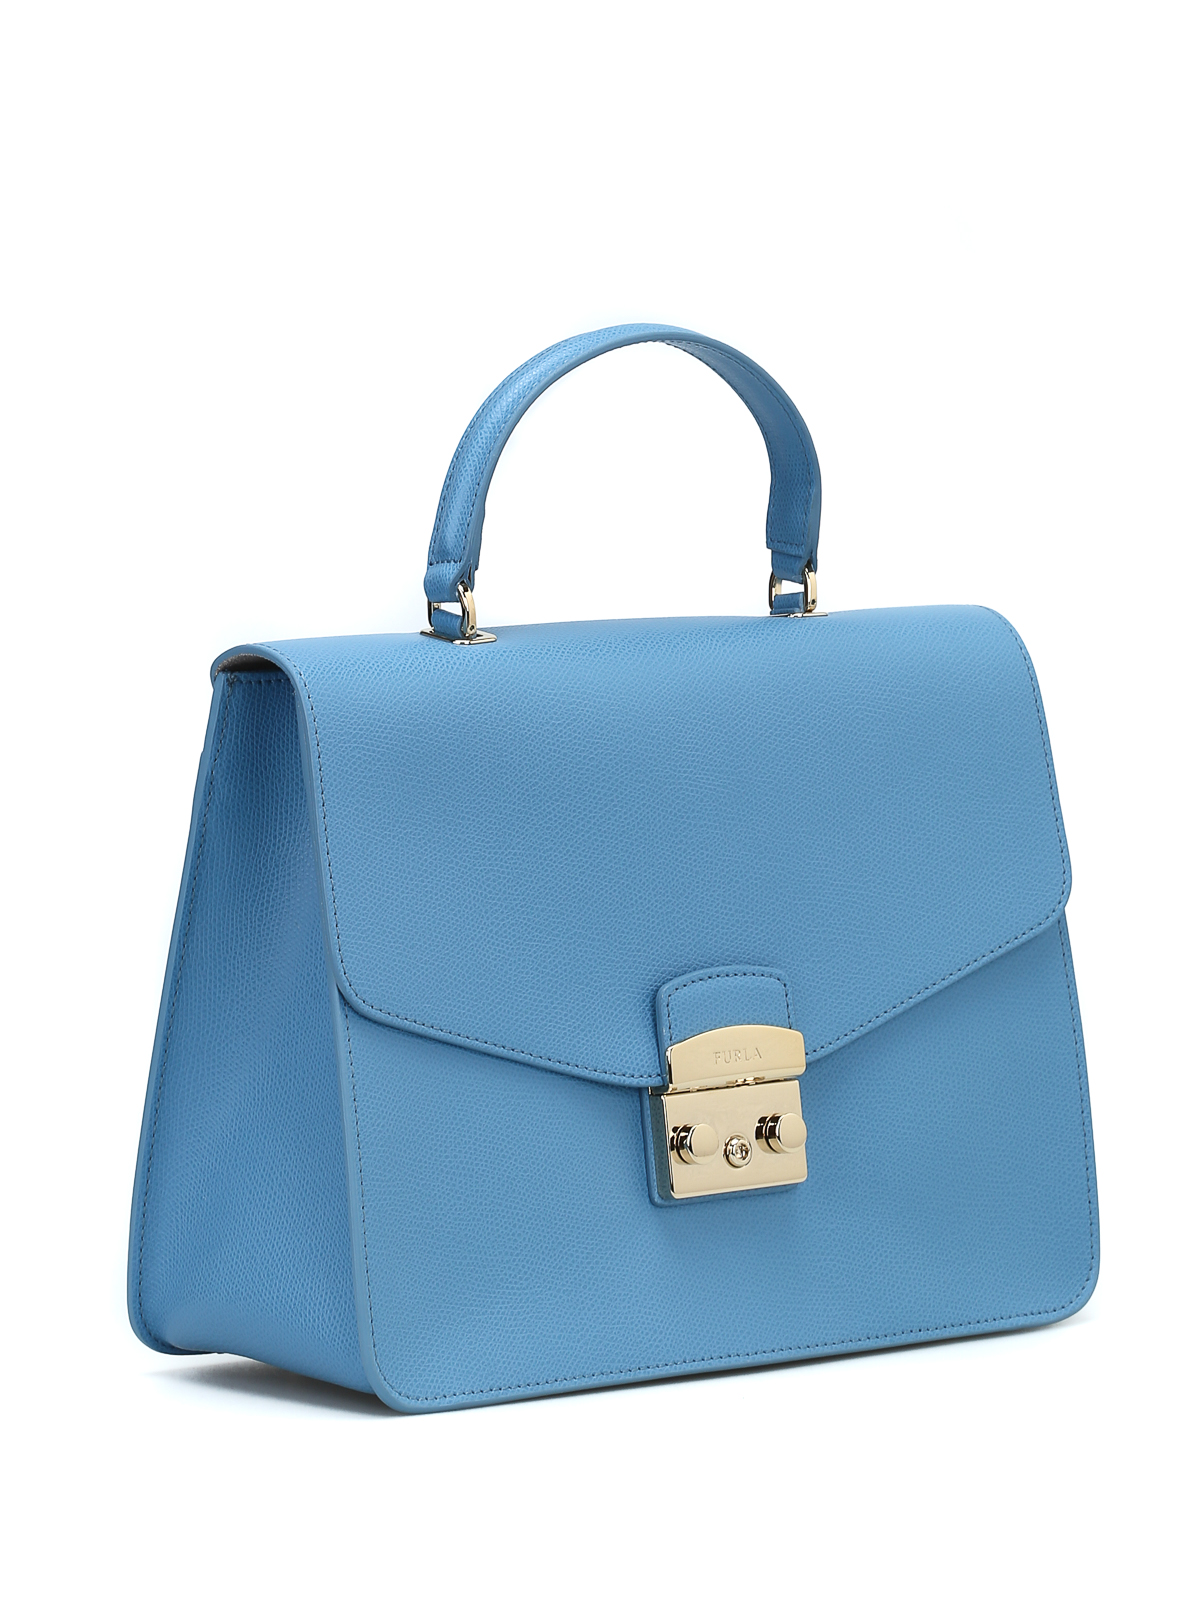 Furla Metropolis M sky blue leather bag tVnhK8SrHh